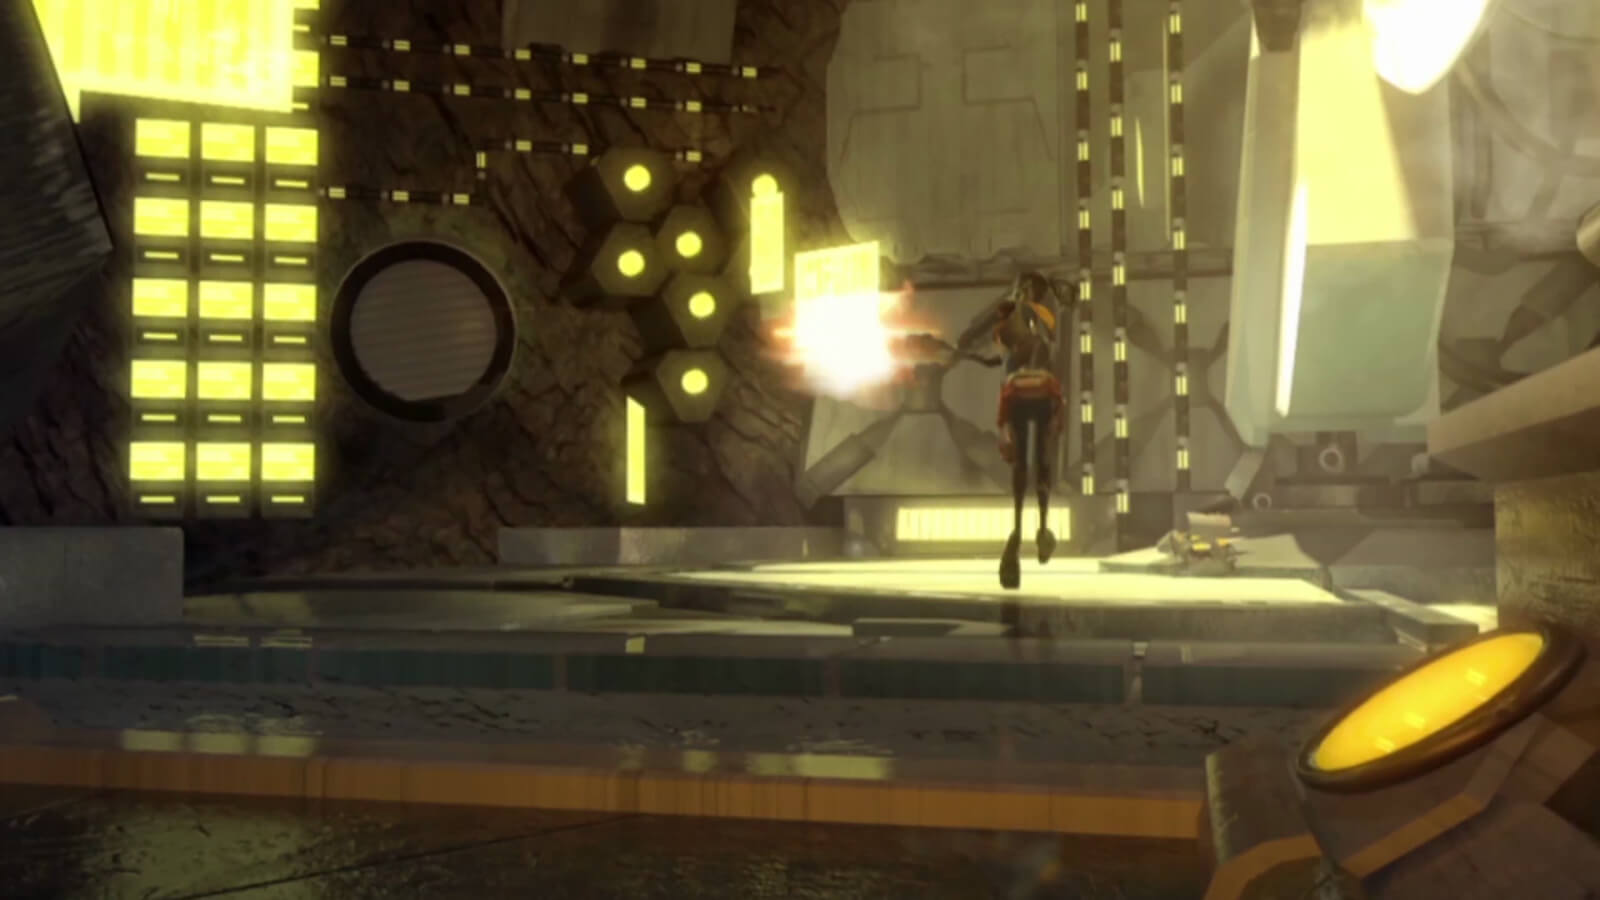 A man runs through a yellow-lit cavern shooting a laser gun at an unseen enemy to his left